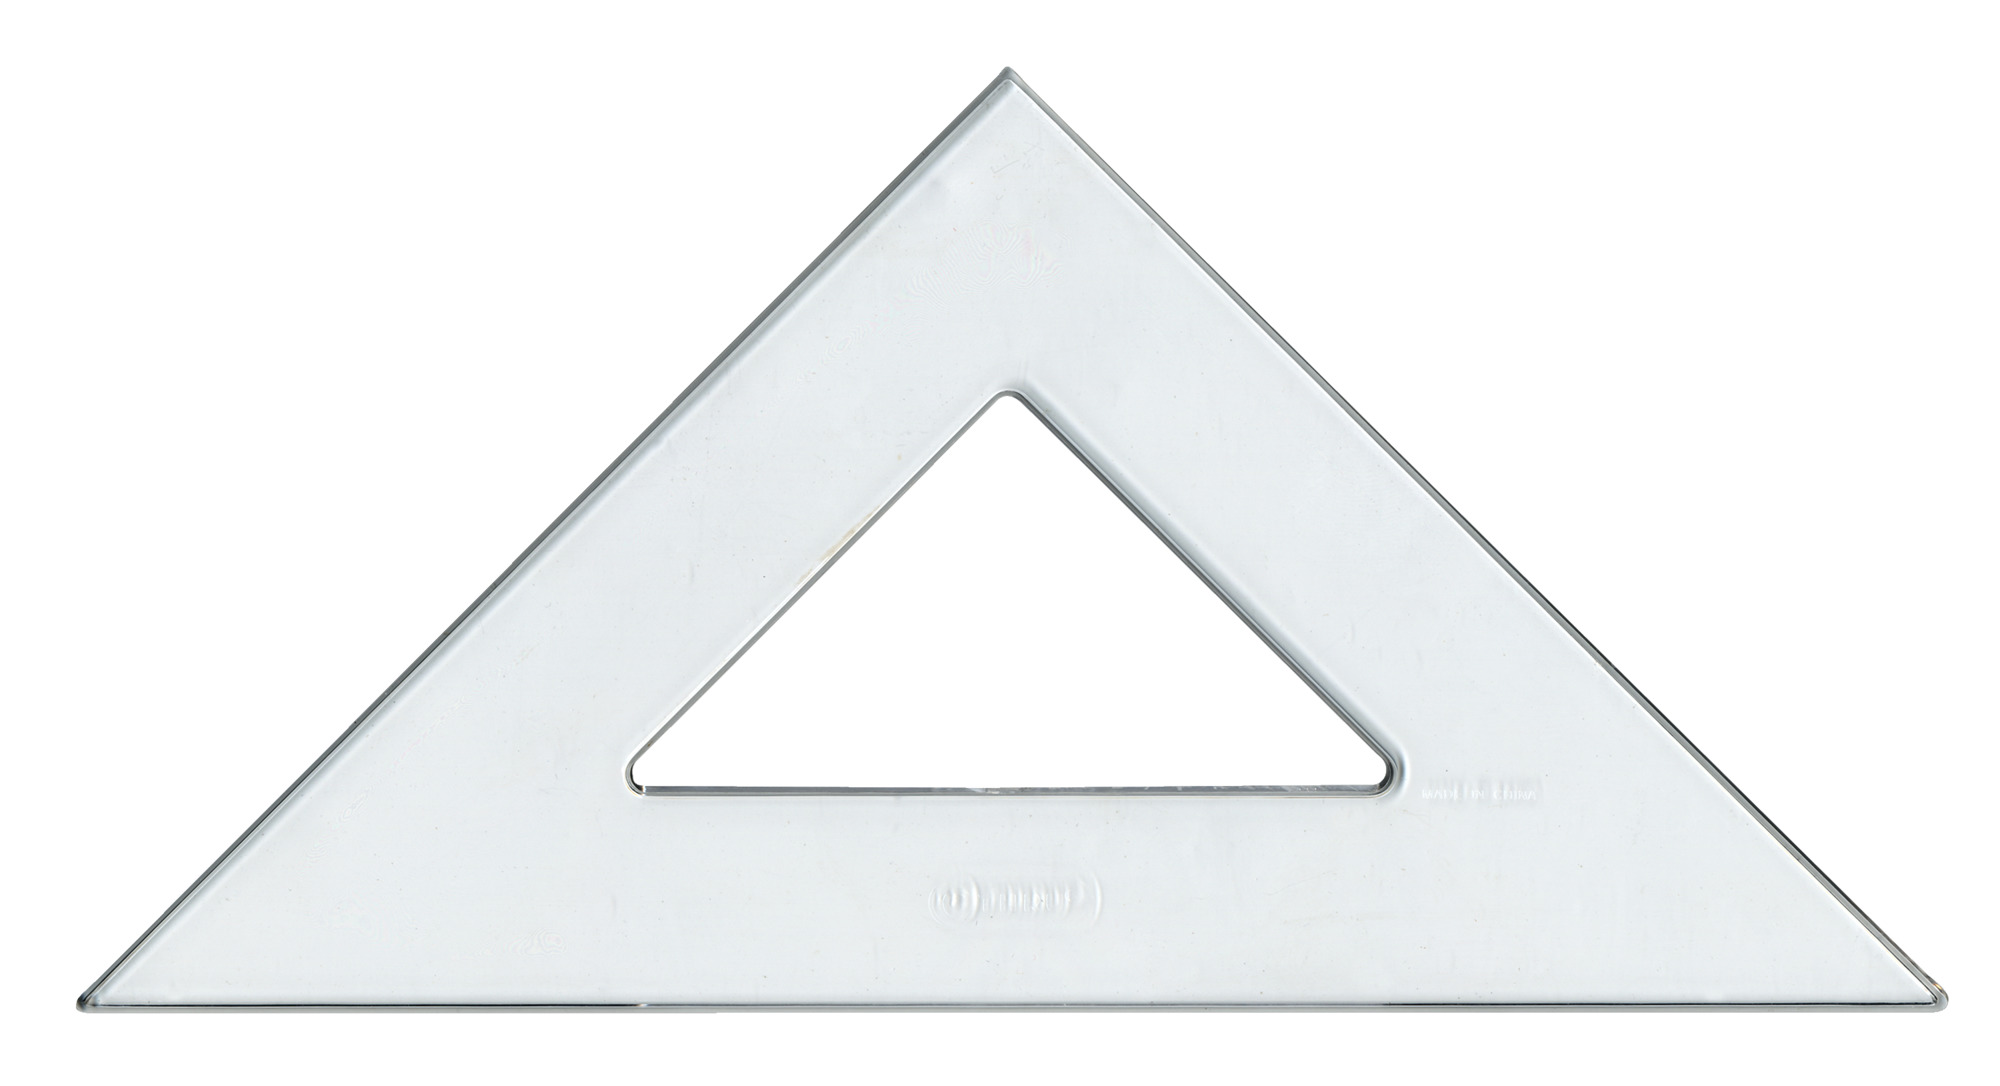 Westcott Student Grade Polystyrene Triangle  Degrees 10 Inches Clear